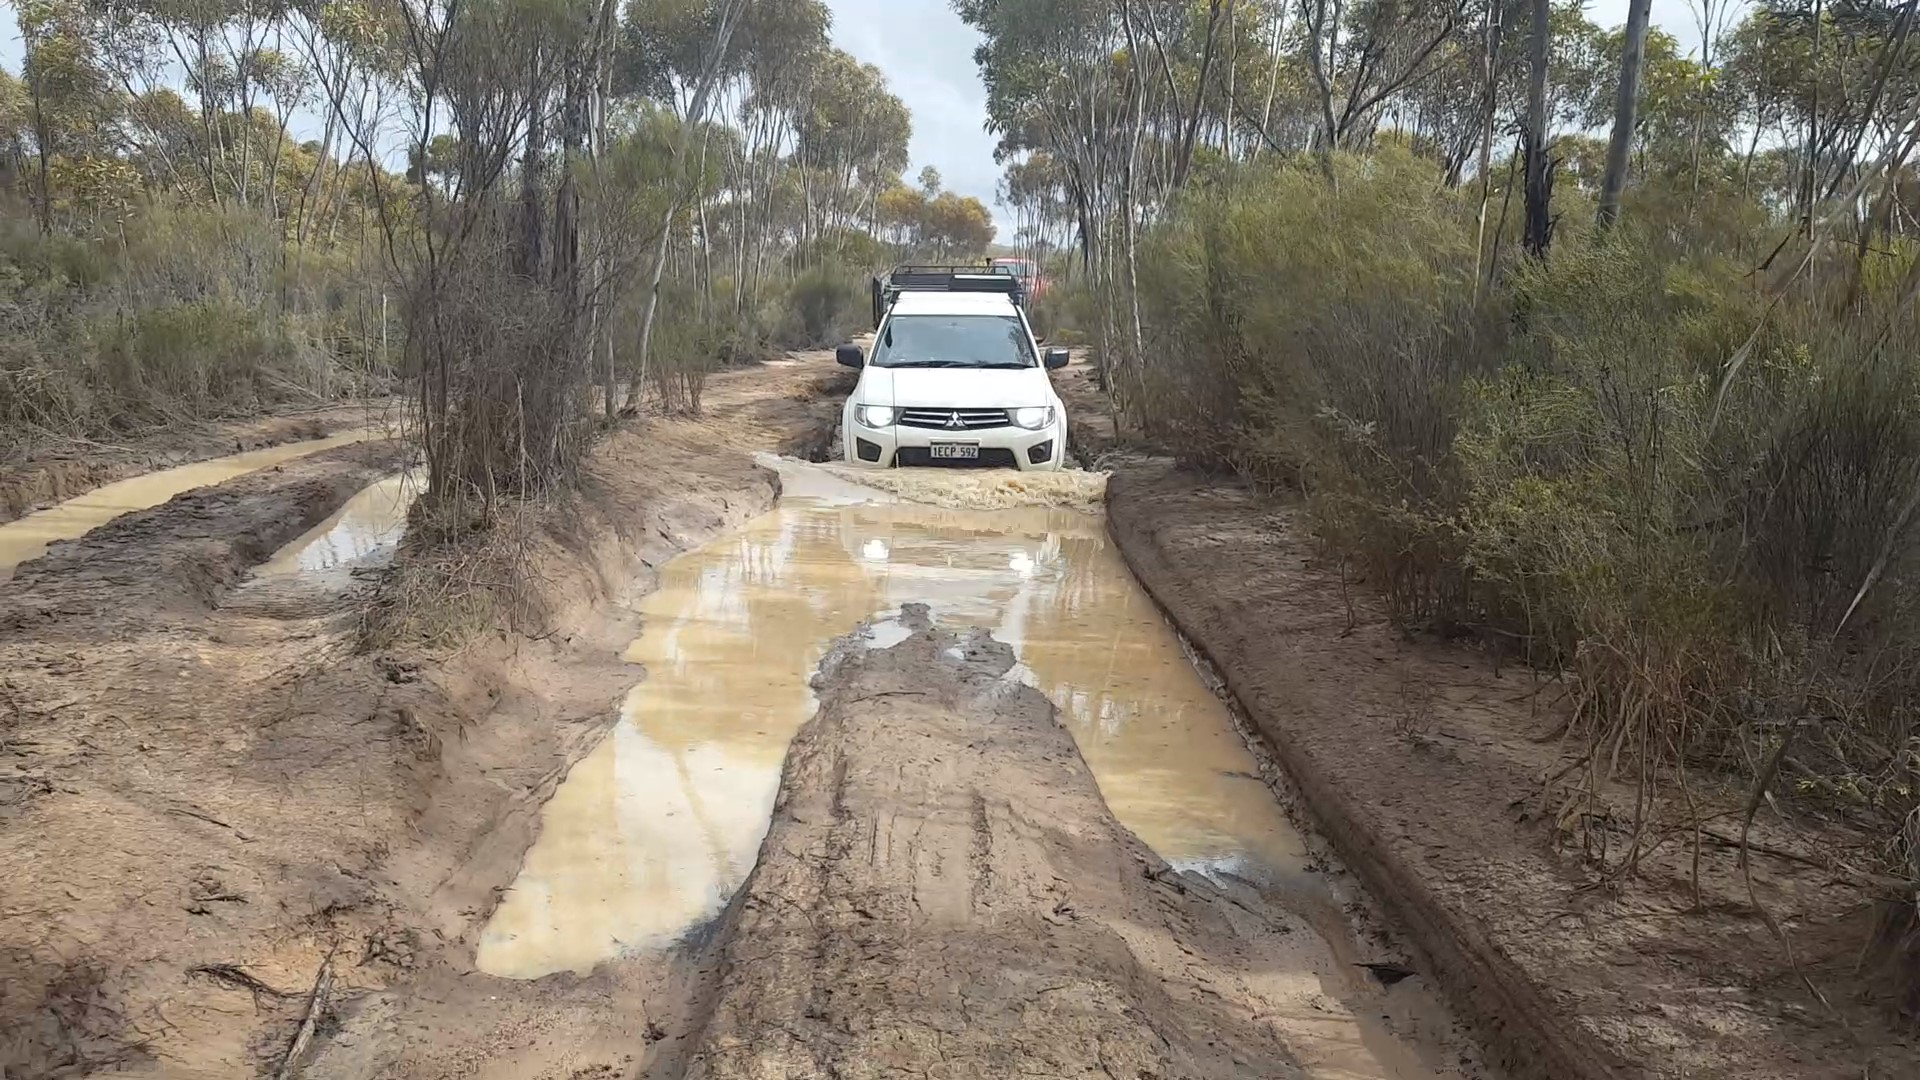 Another muddy puddle to cross